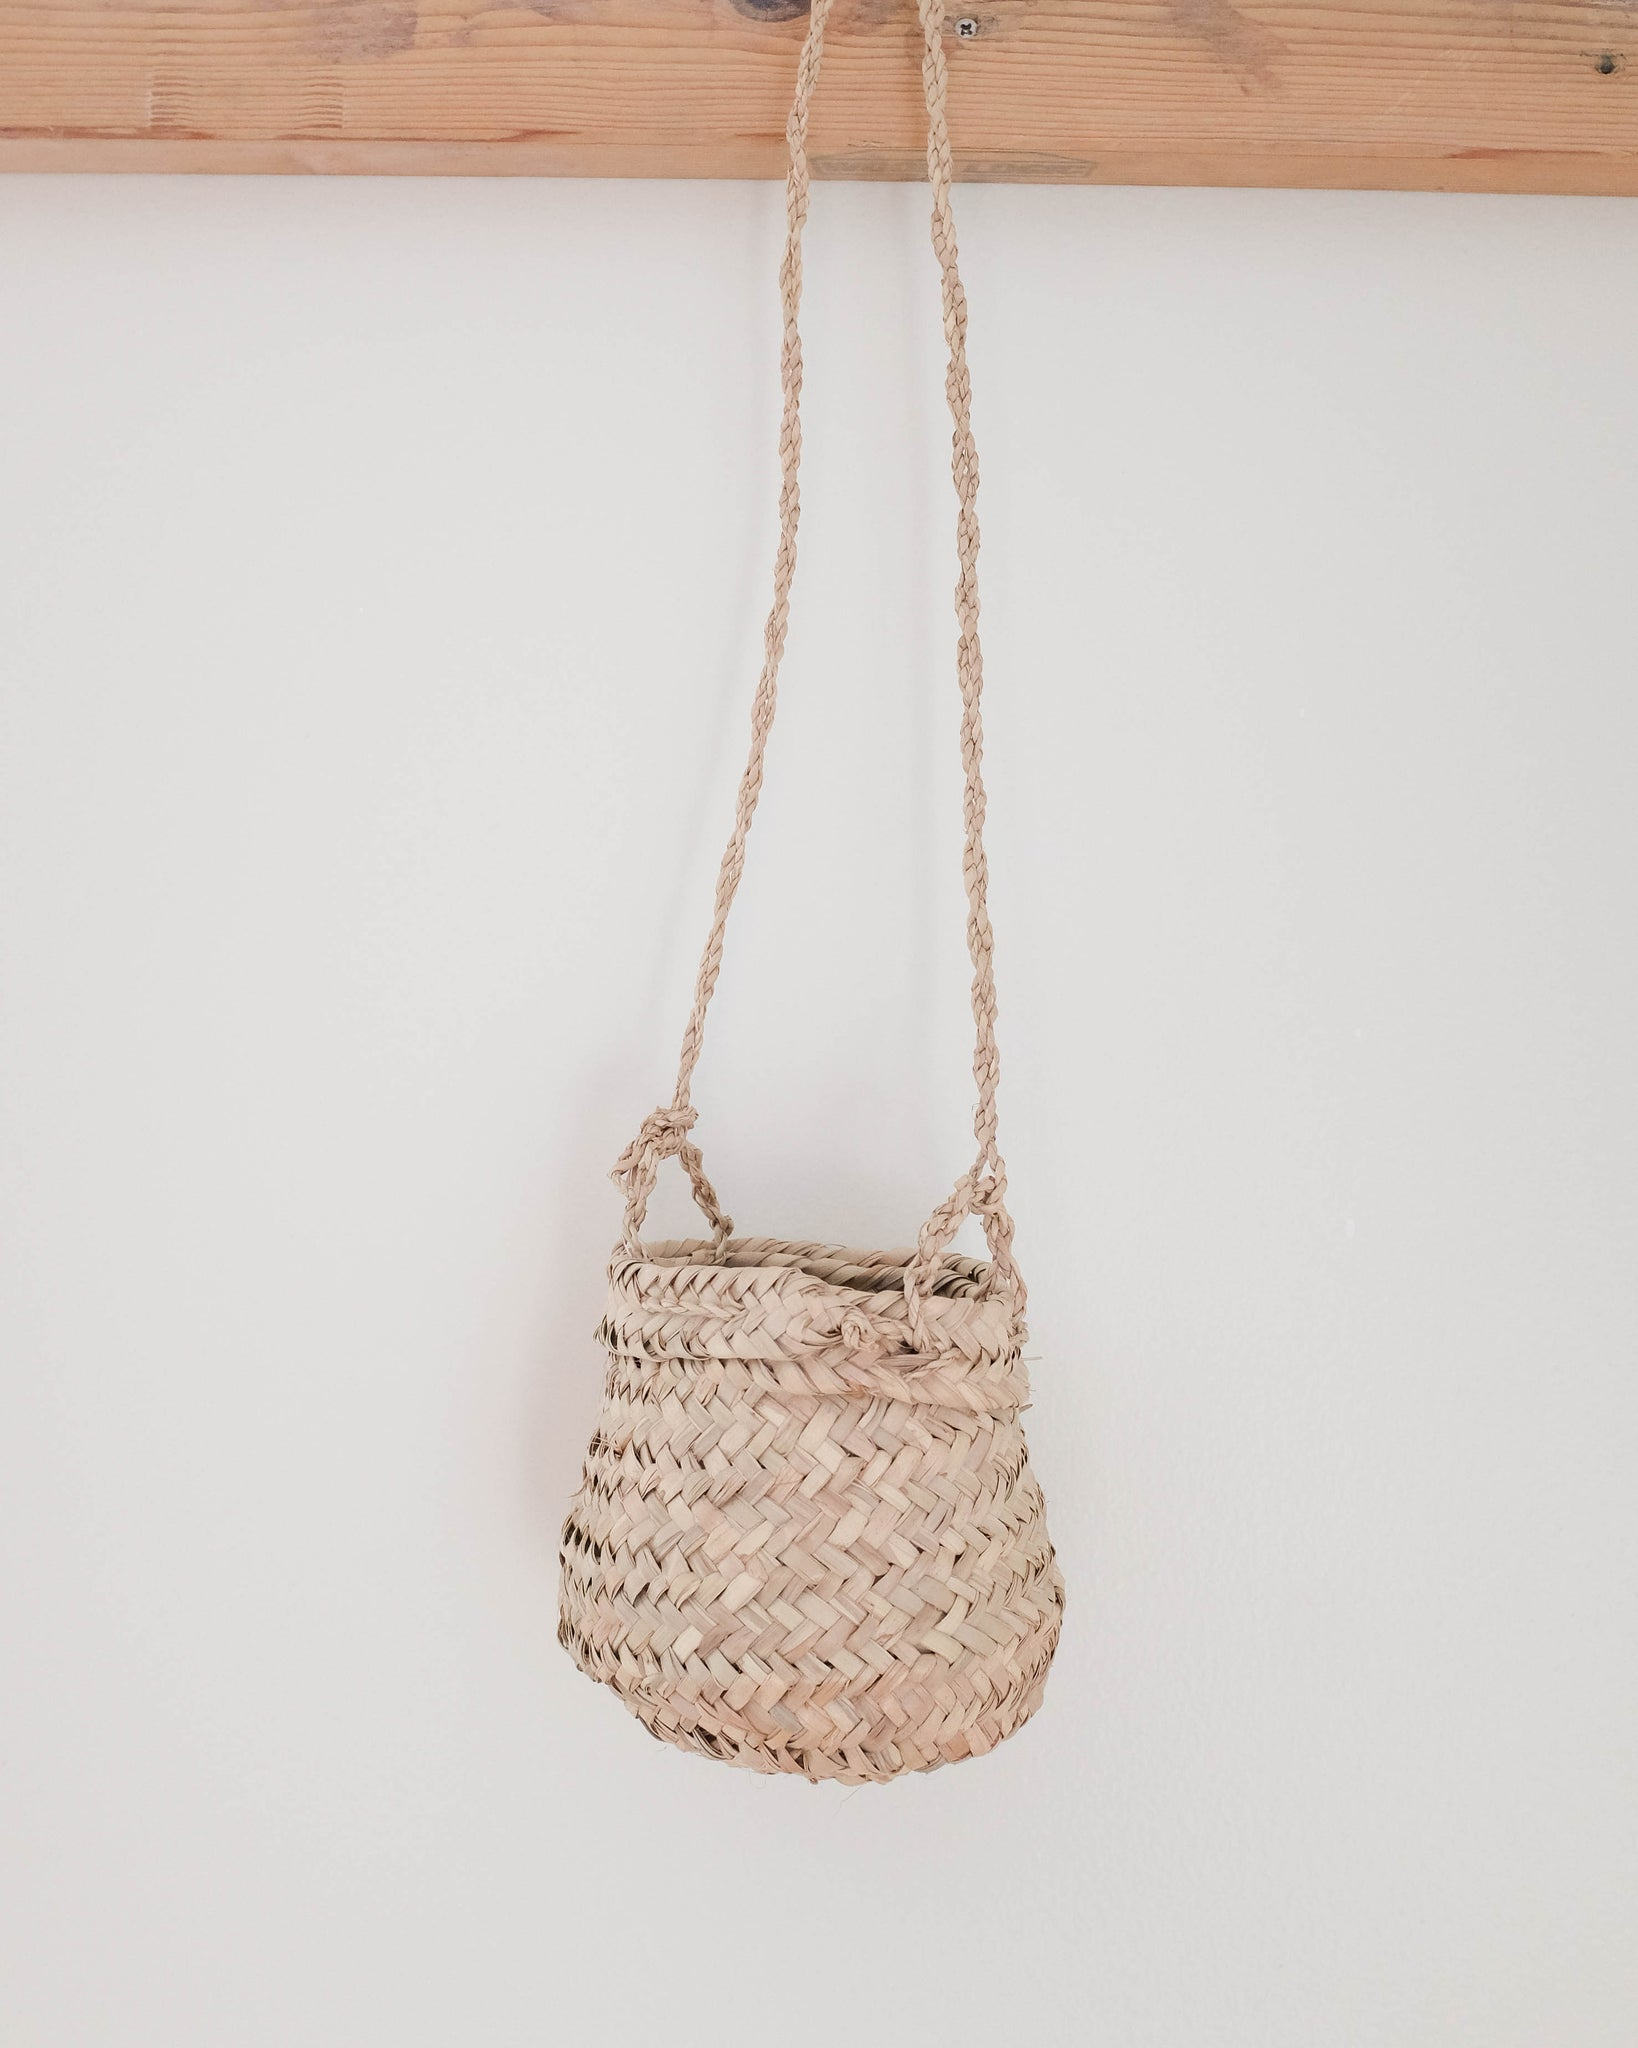 Woven Palm Leaf Hanging Planter